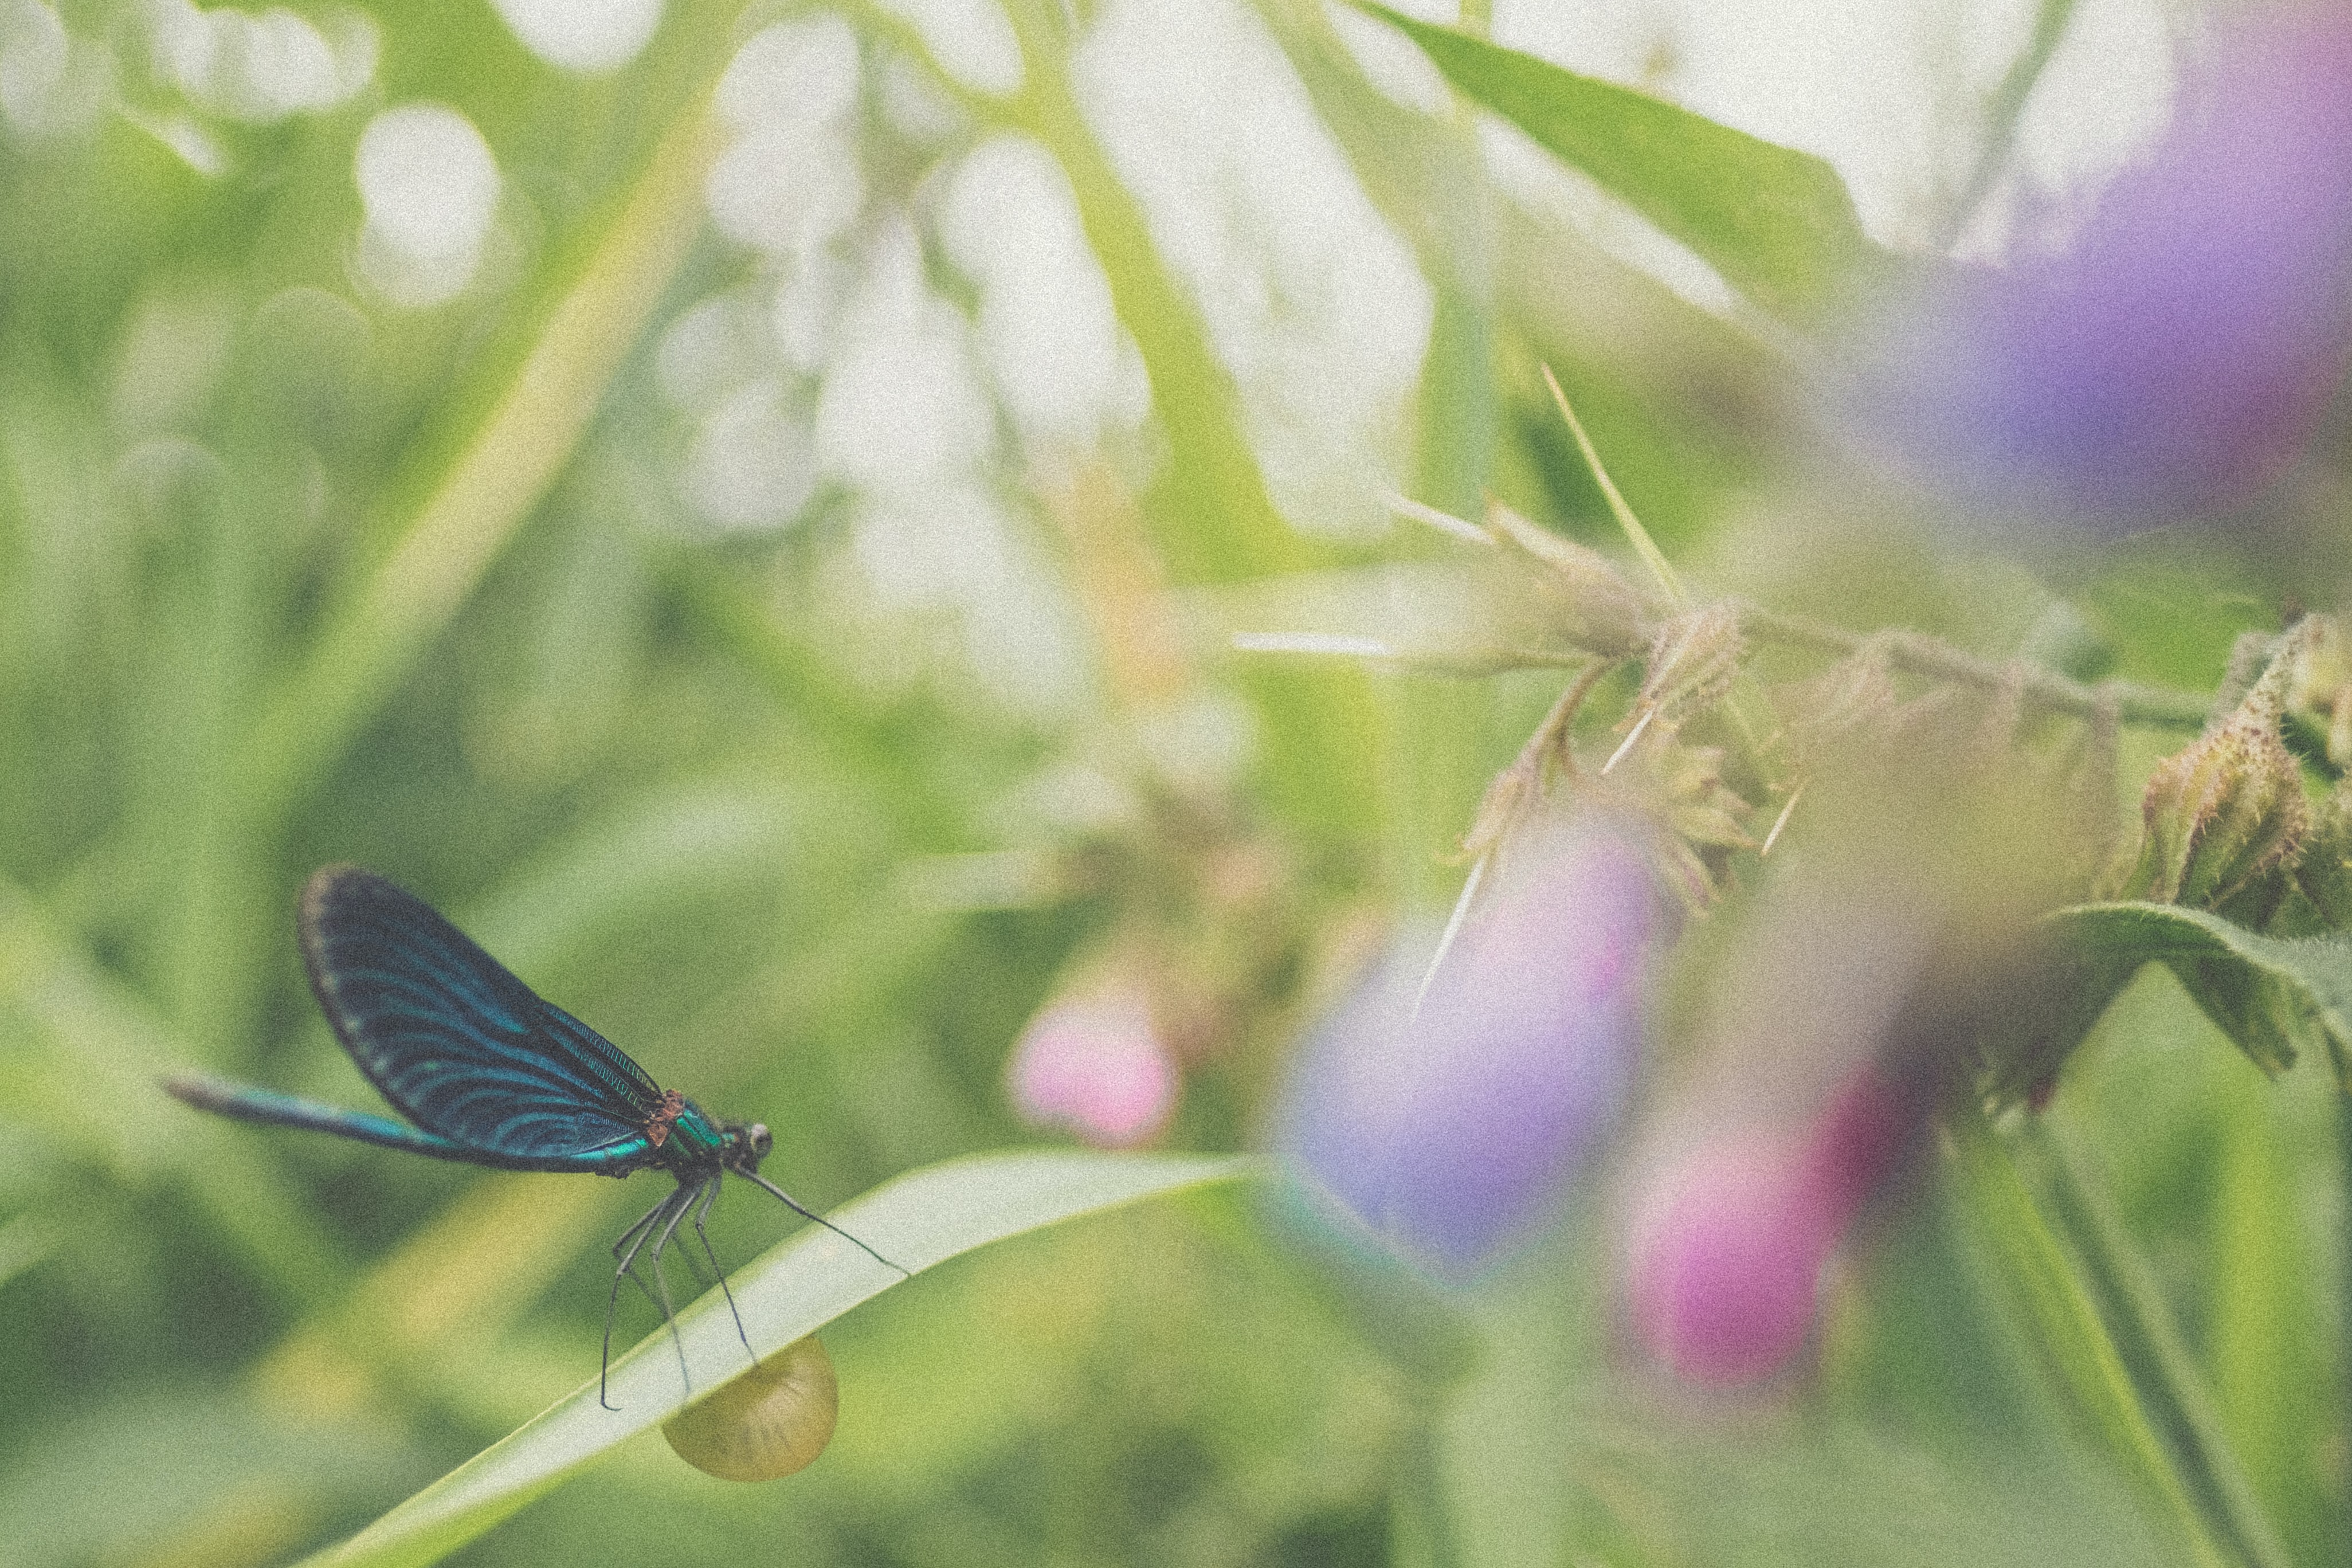 low-angle of blue butterfly on grass